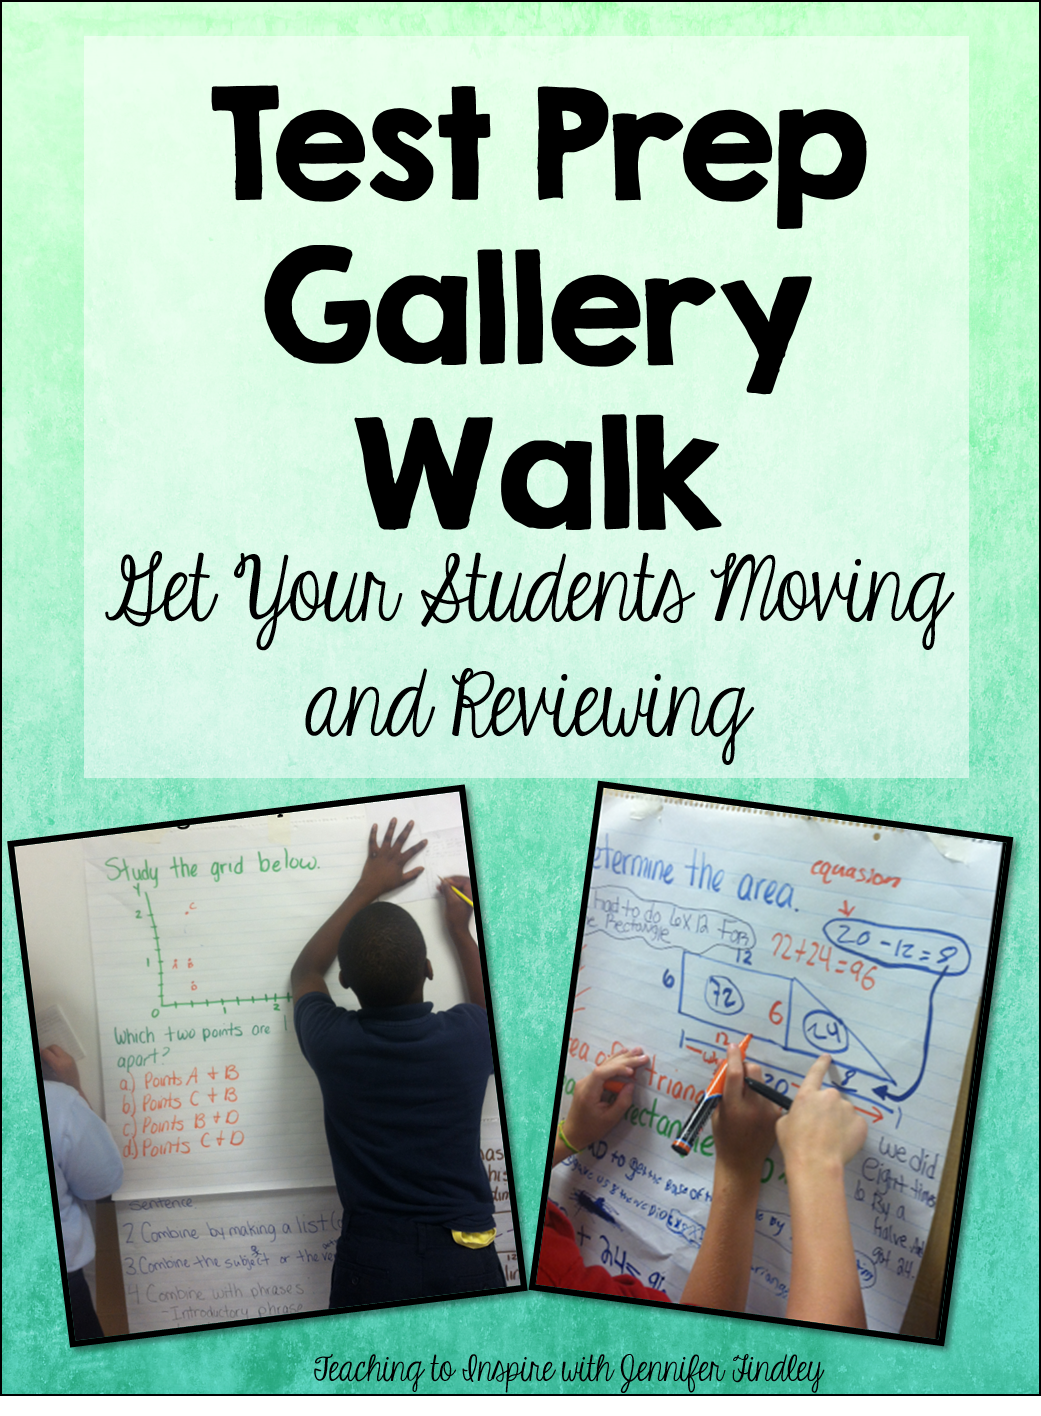 Get Them Moving! Test Prep Gallery Walk in 2018 | Math Teaching ...